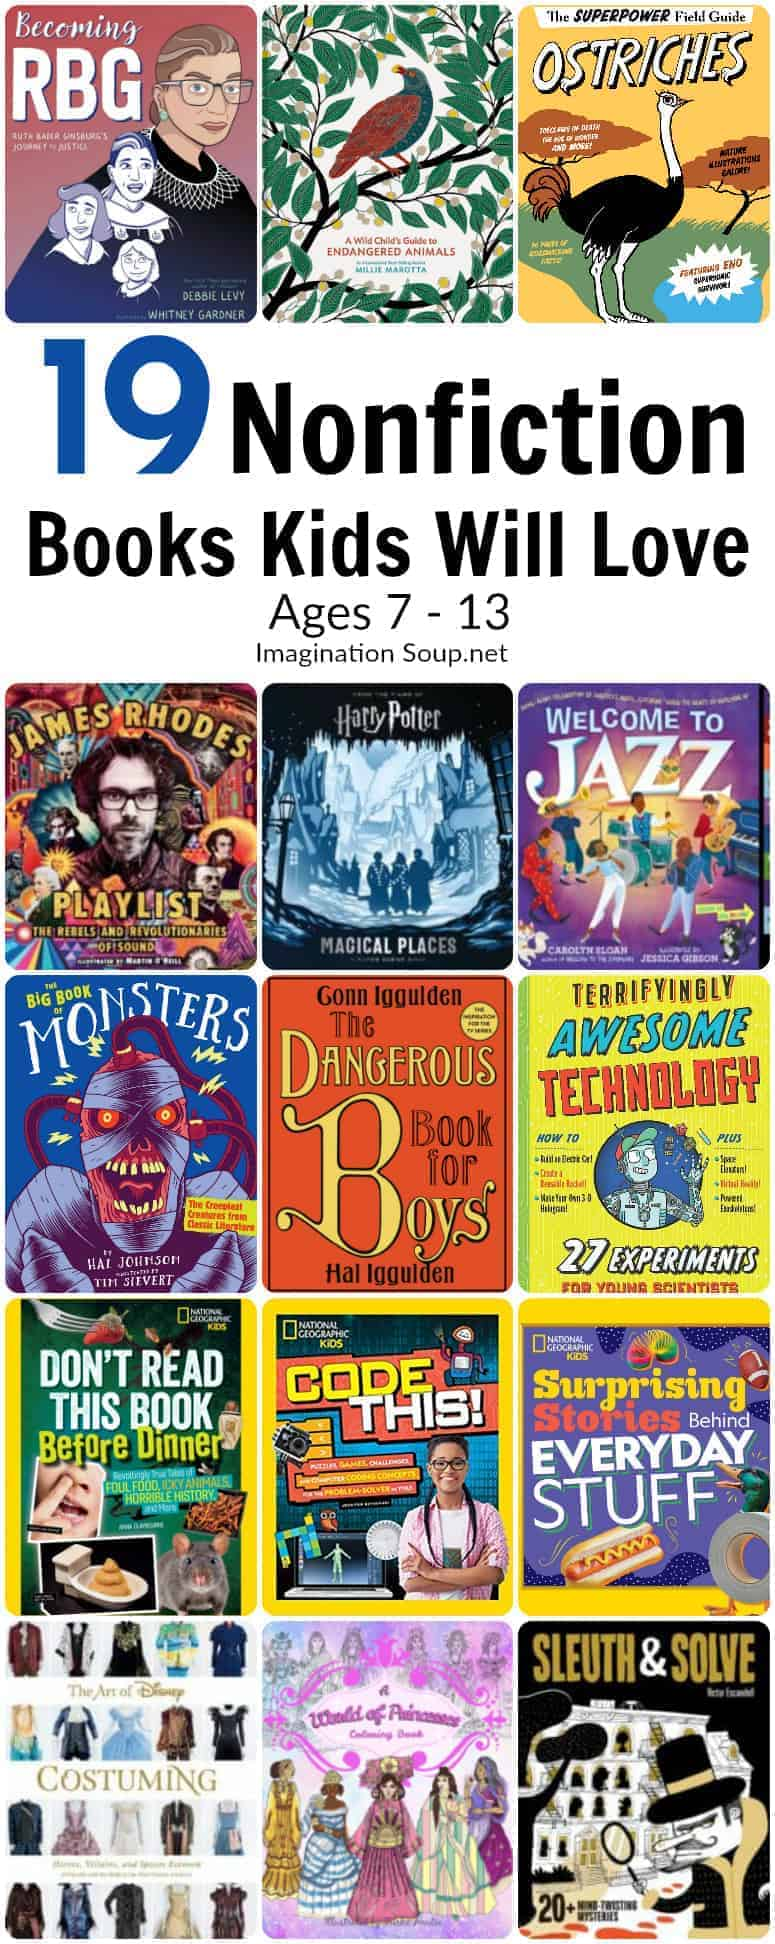 19 New Nonfiction Books Kids Will Love (Ages 7 - 13)